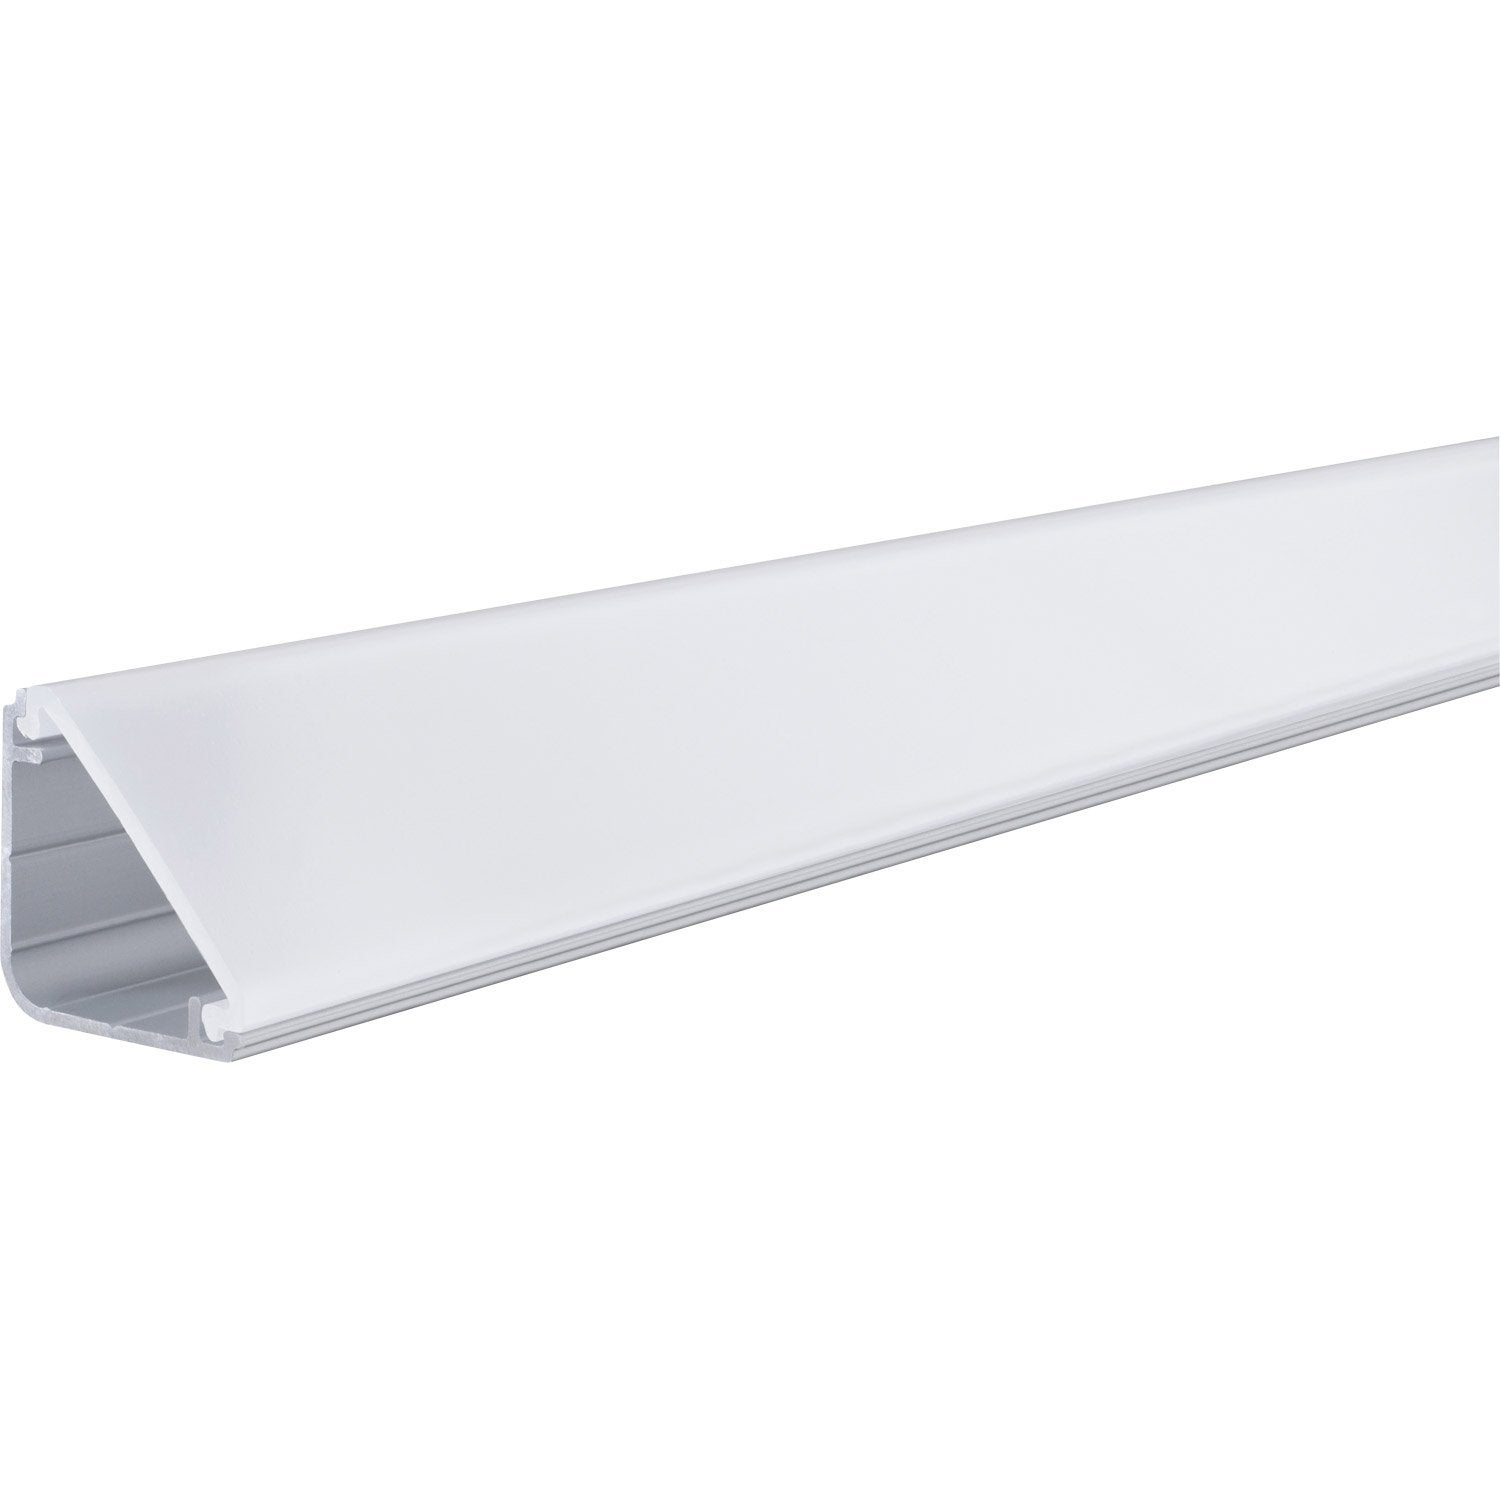 Profil pour ruban led delta profil leroy merlin for Luci led leroy merlin